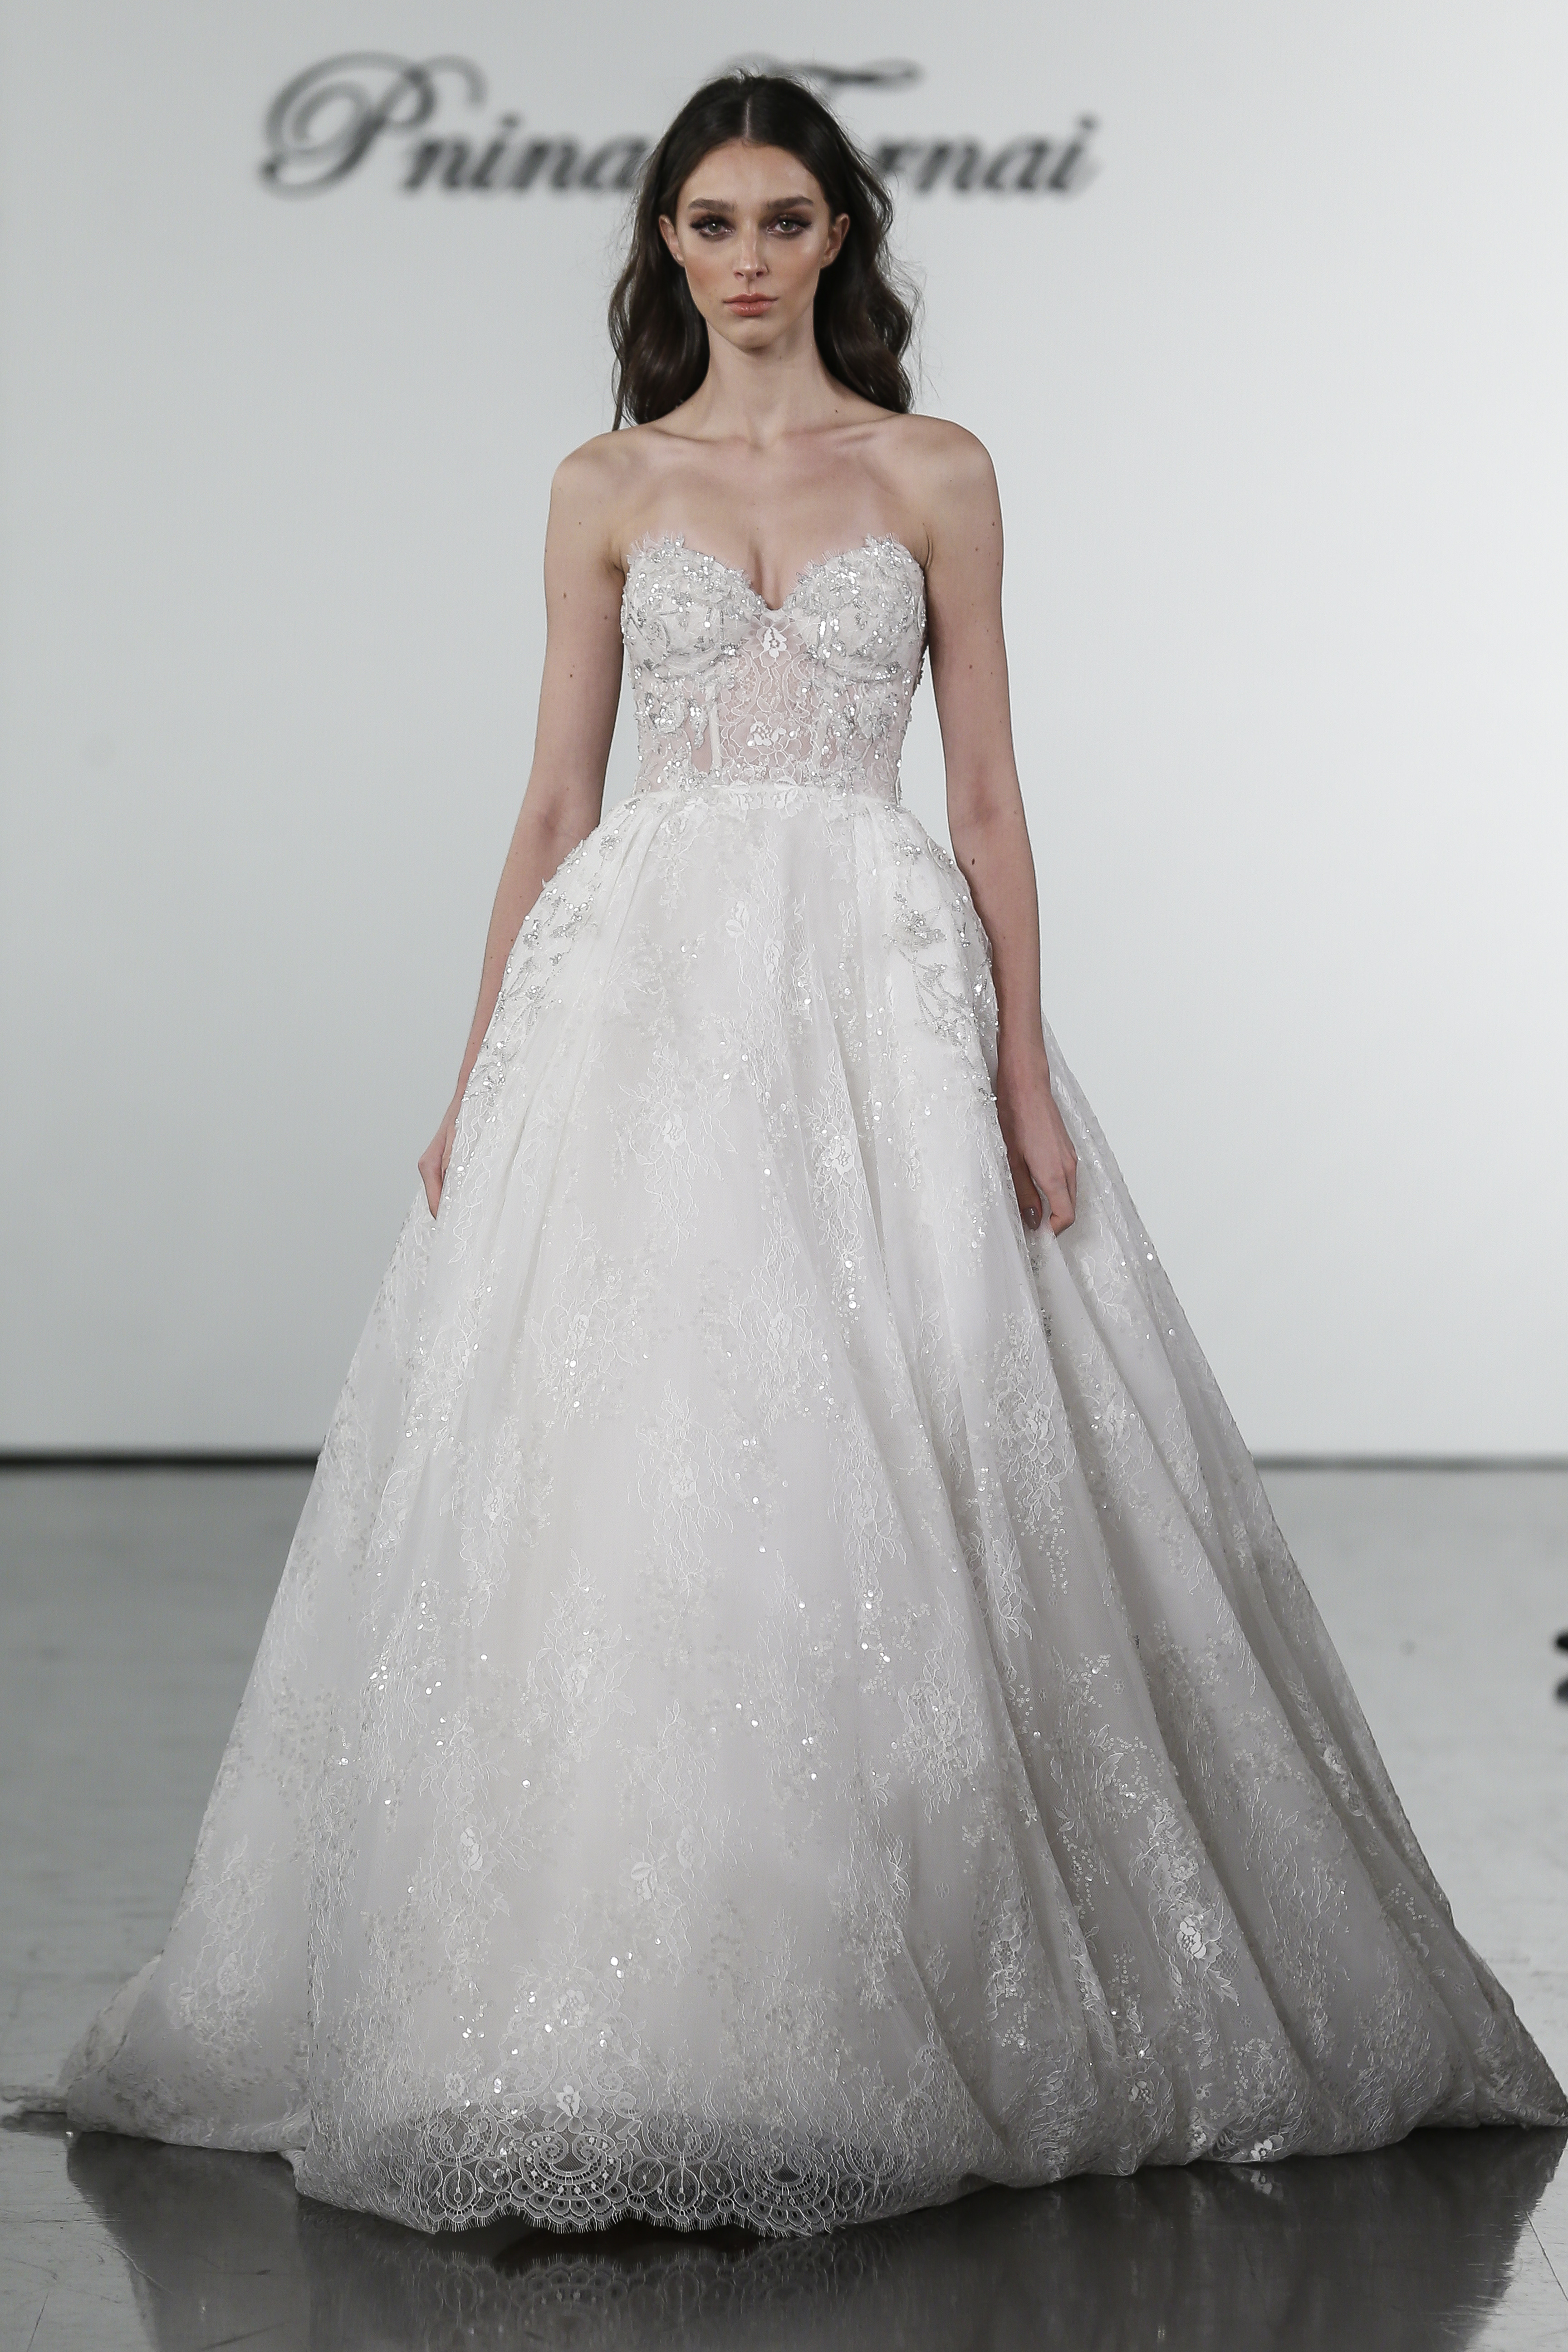 f56d1db72175f Ballgown With Sheer Bodice And Embroidered Floral Applique Skirt |  Kleinfeld Bridal